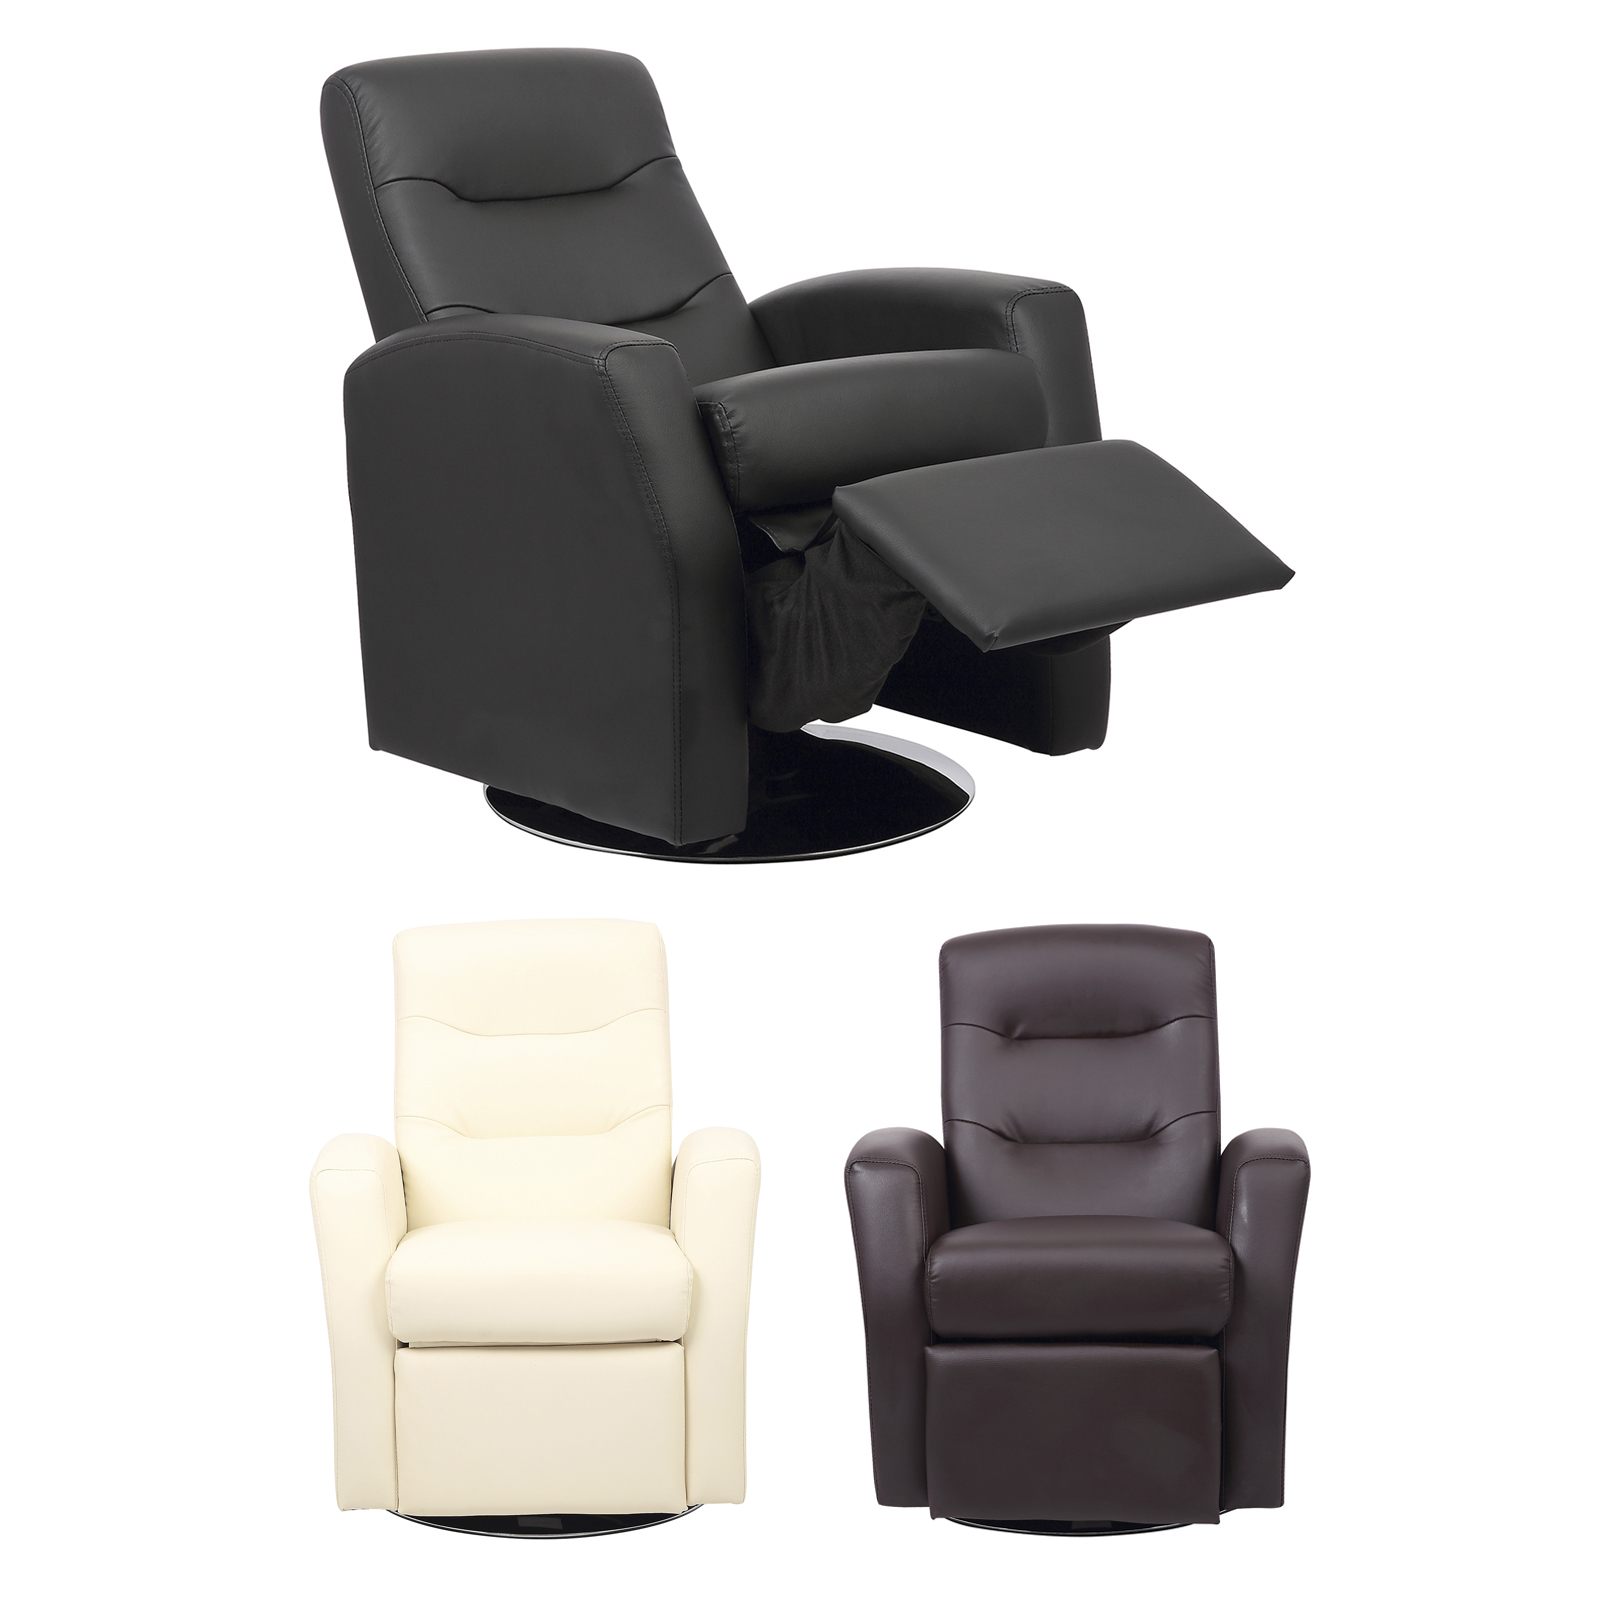 Kids Reclining Swivel Chair Living Room Furniture Padded Faux Leather Headrest Ebay